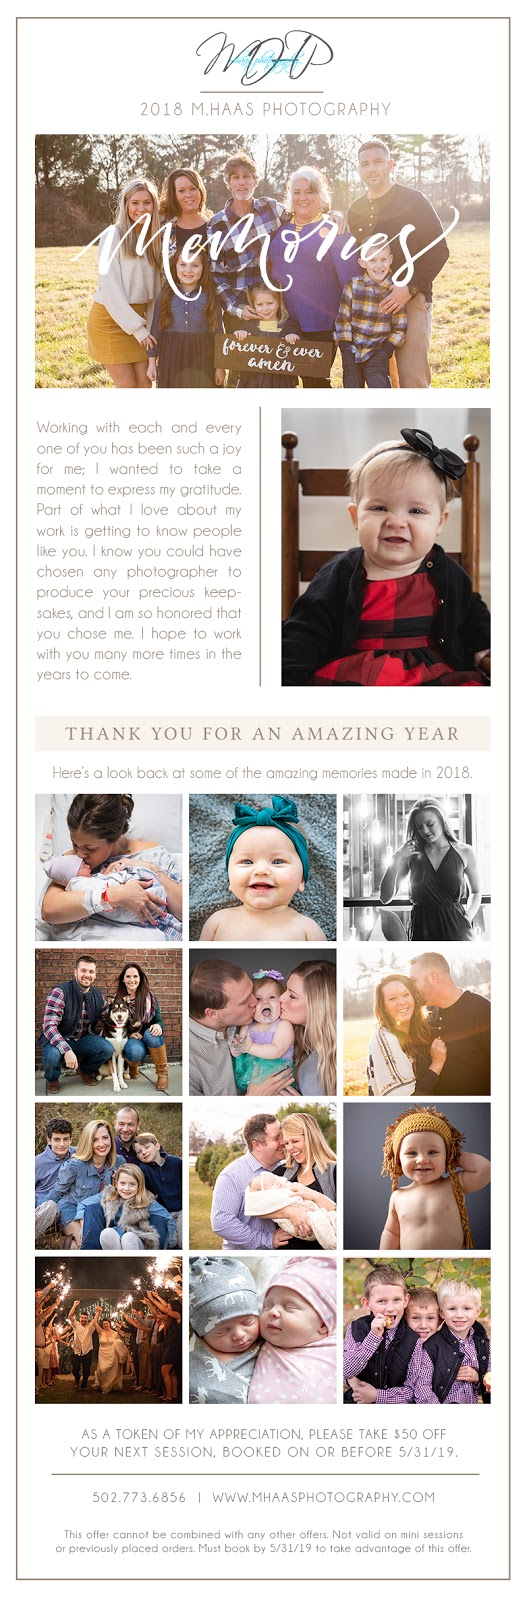 coupon, 2019, families, deal, repeat clients, love, $50 off